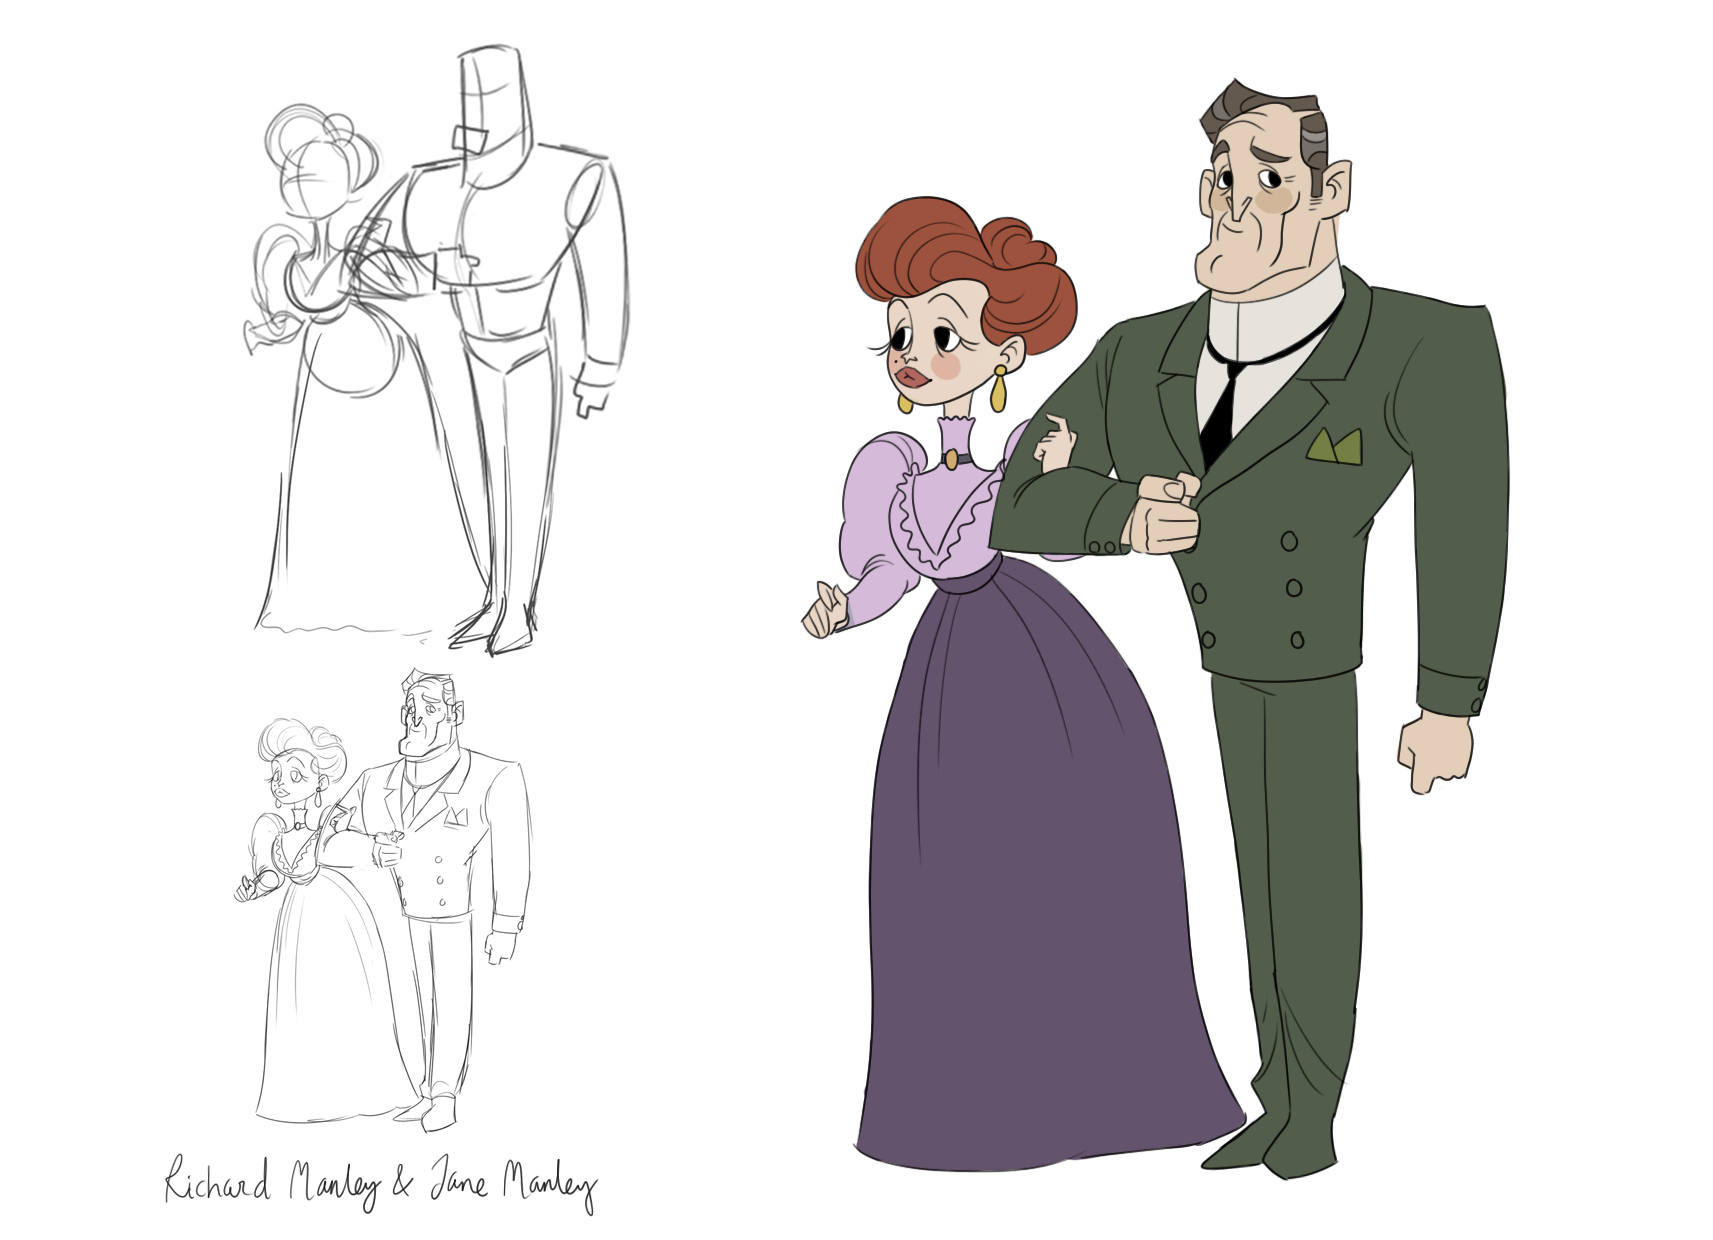 Dick Manley and wife character design